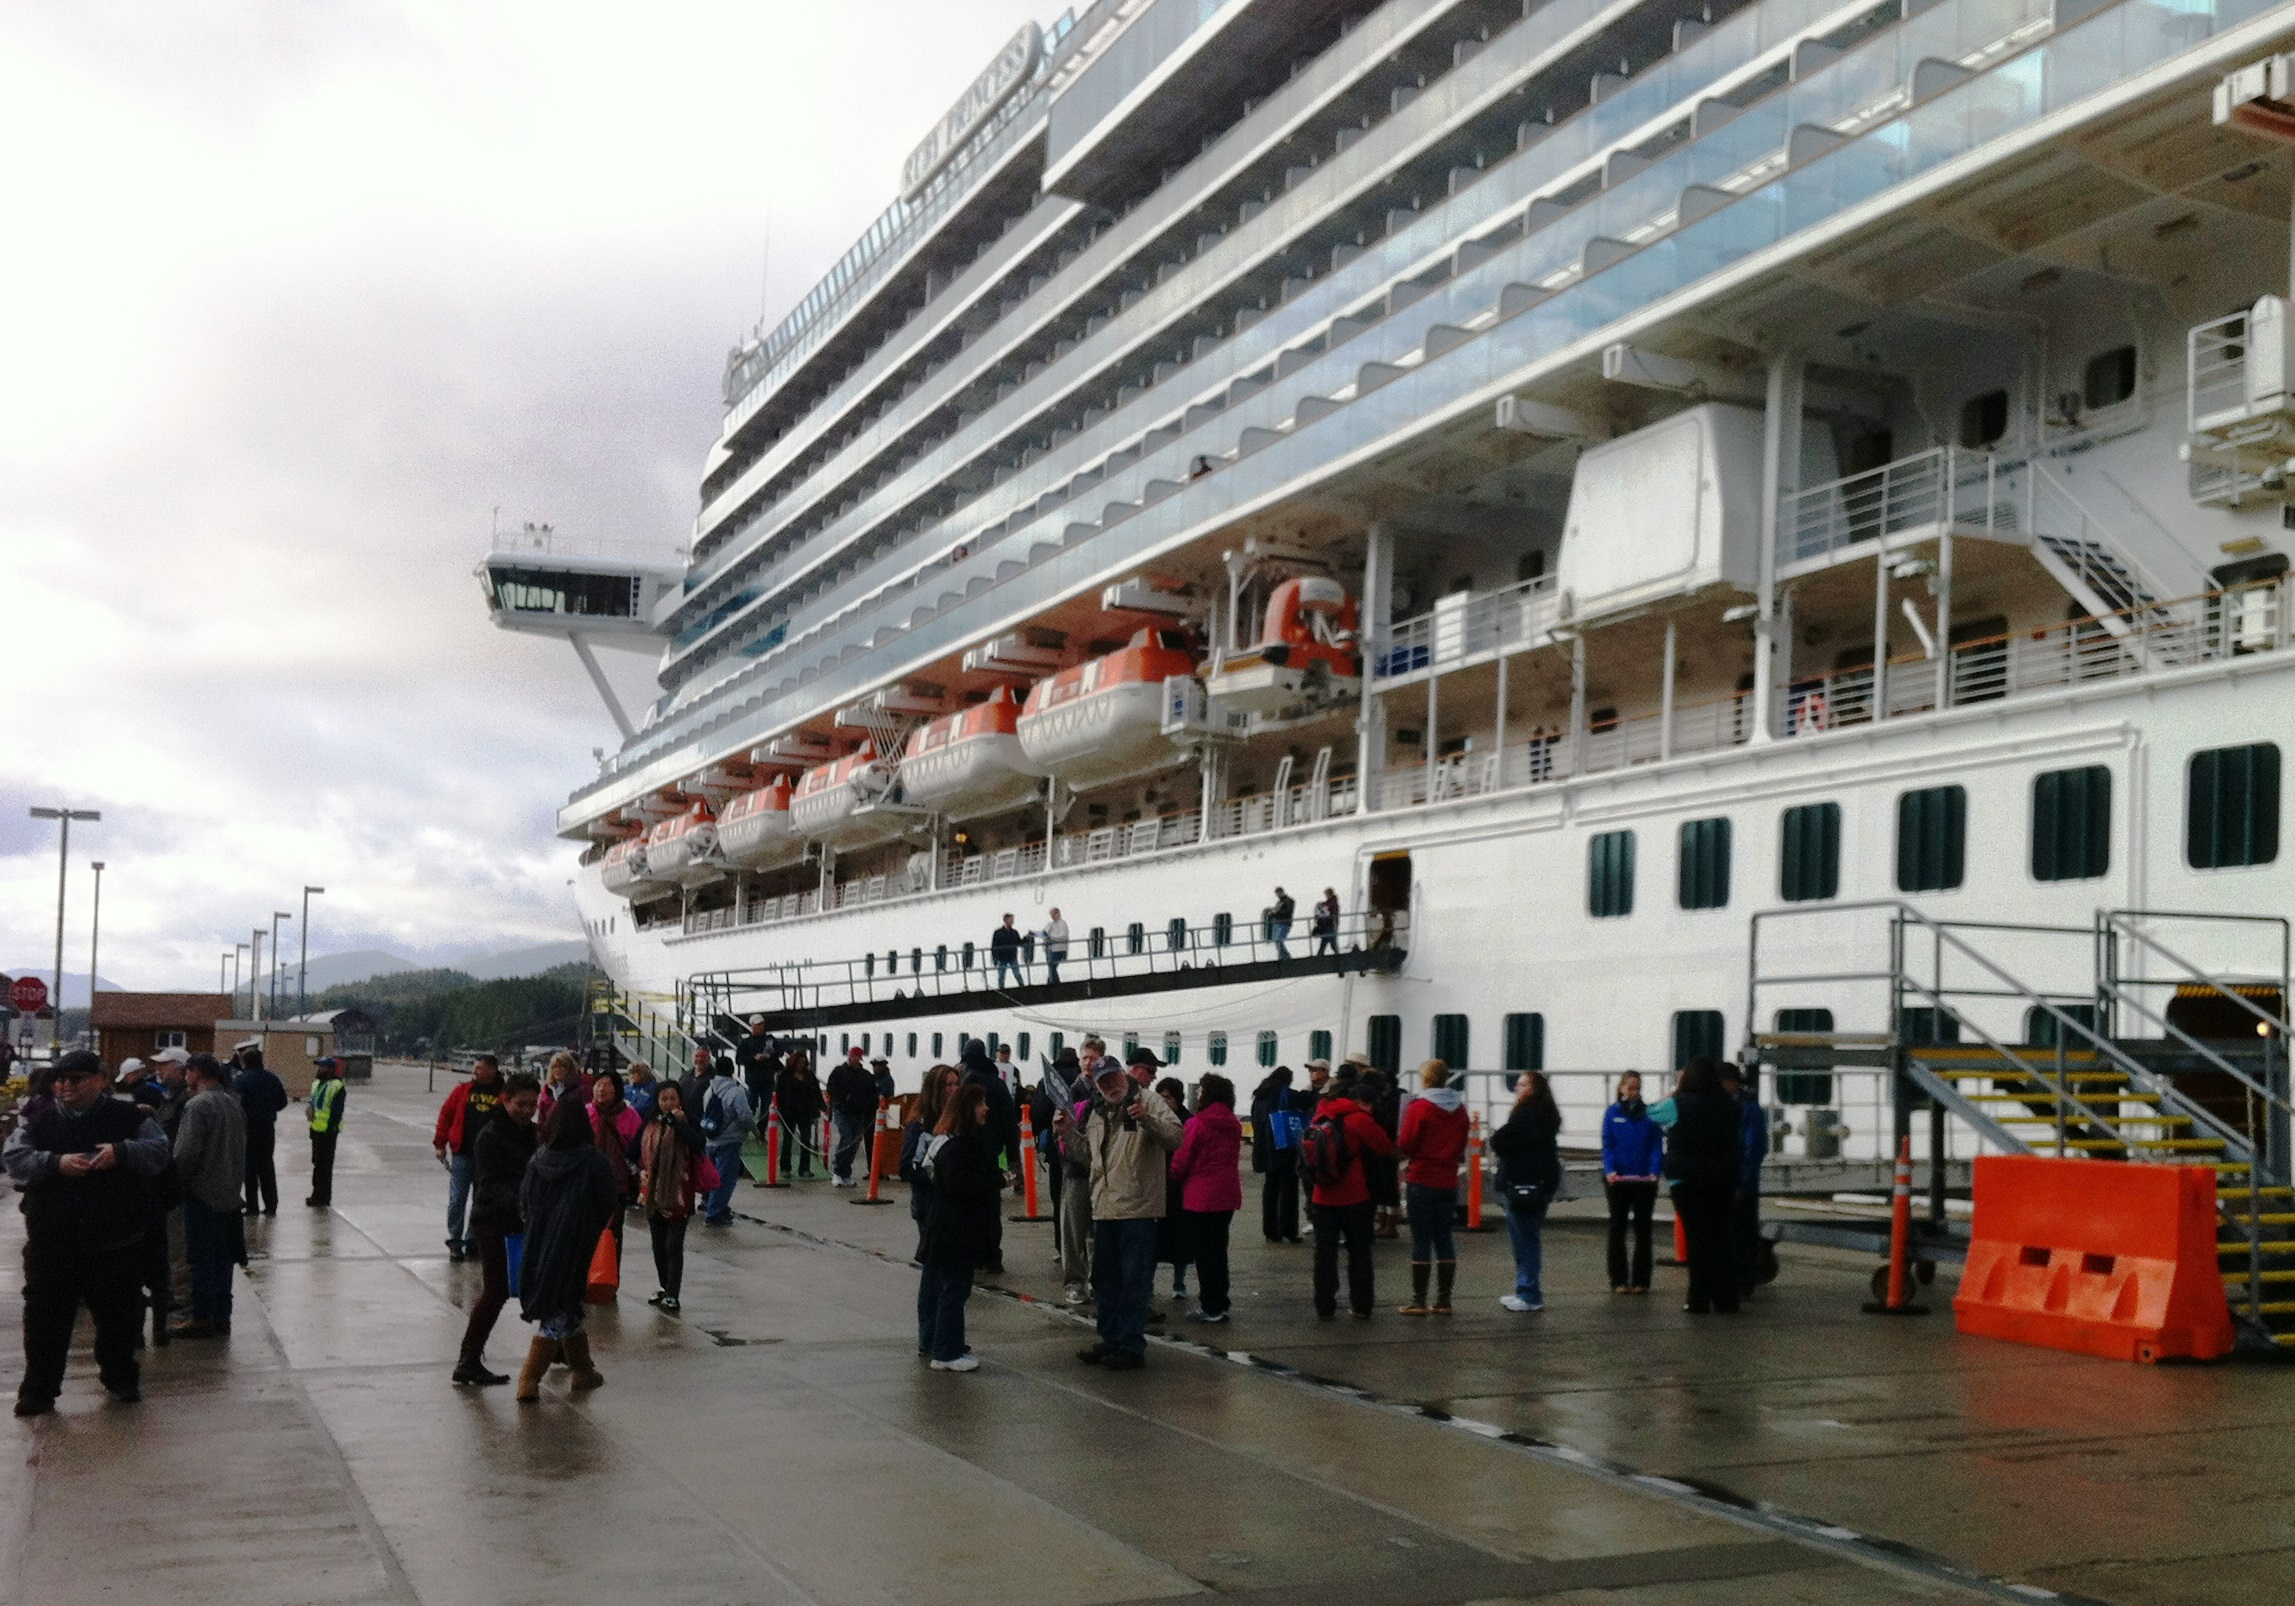 Six Cruise Ships Release Treated Sewage Into Harbors KRBD - Cruise ship sewage